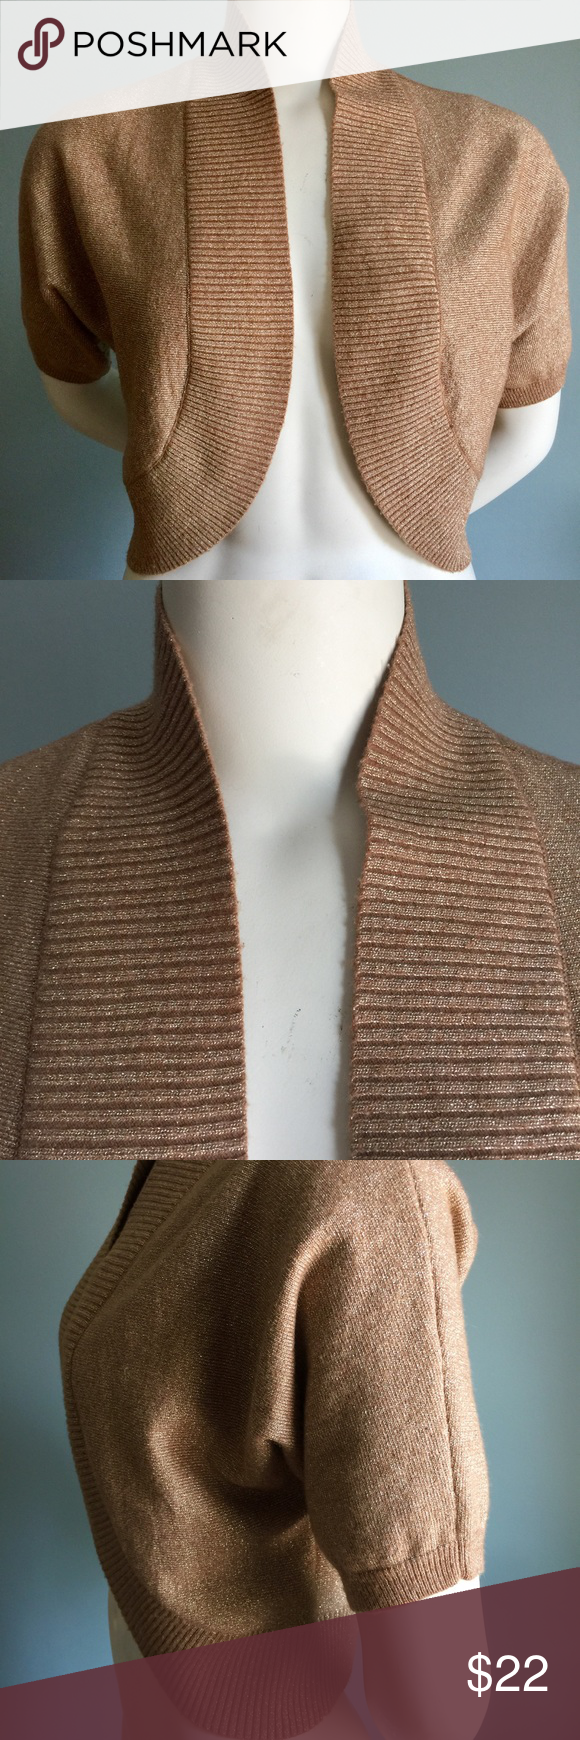 Banana Republic Bronze-gold Shrug | Metallic thread, Banana ...